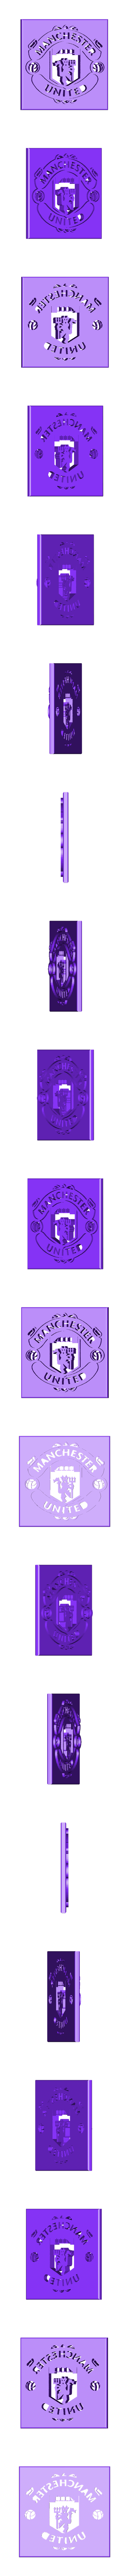 Download Free Stl File Manchester United Logo 3d Printable Design Cults